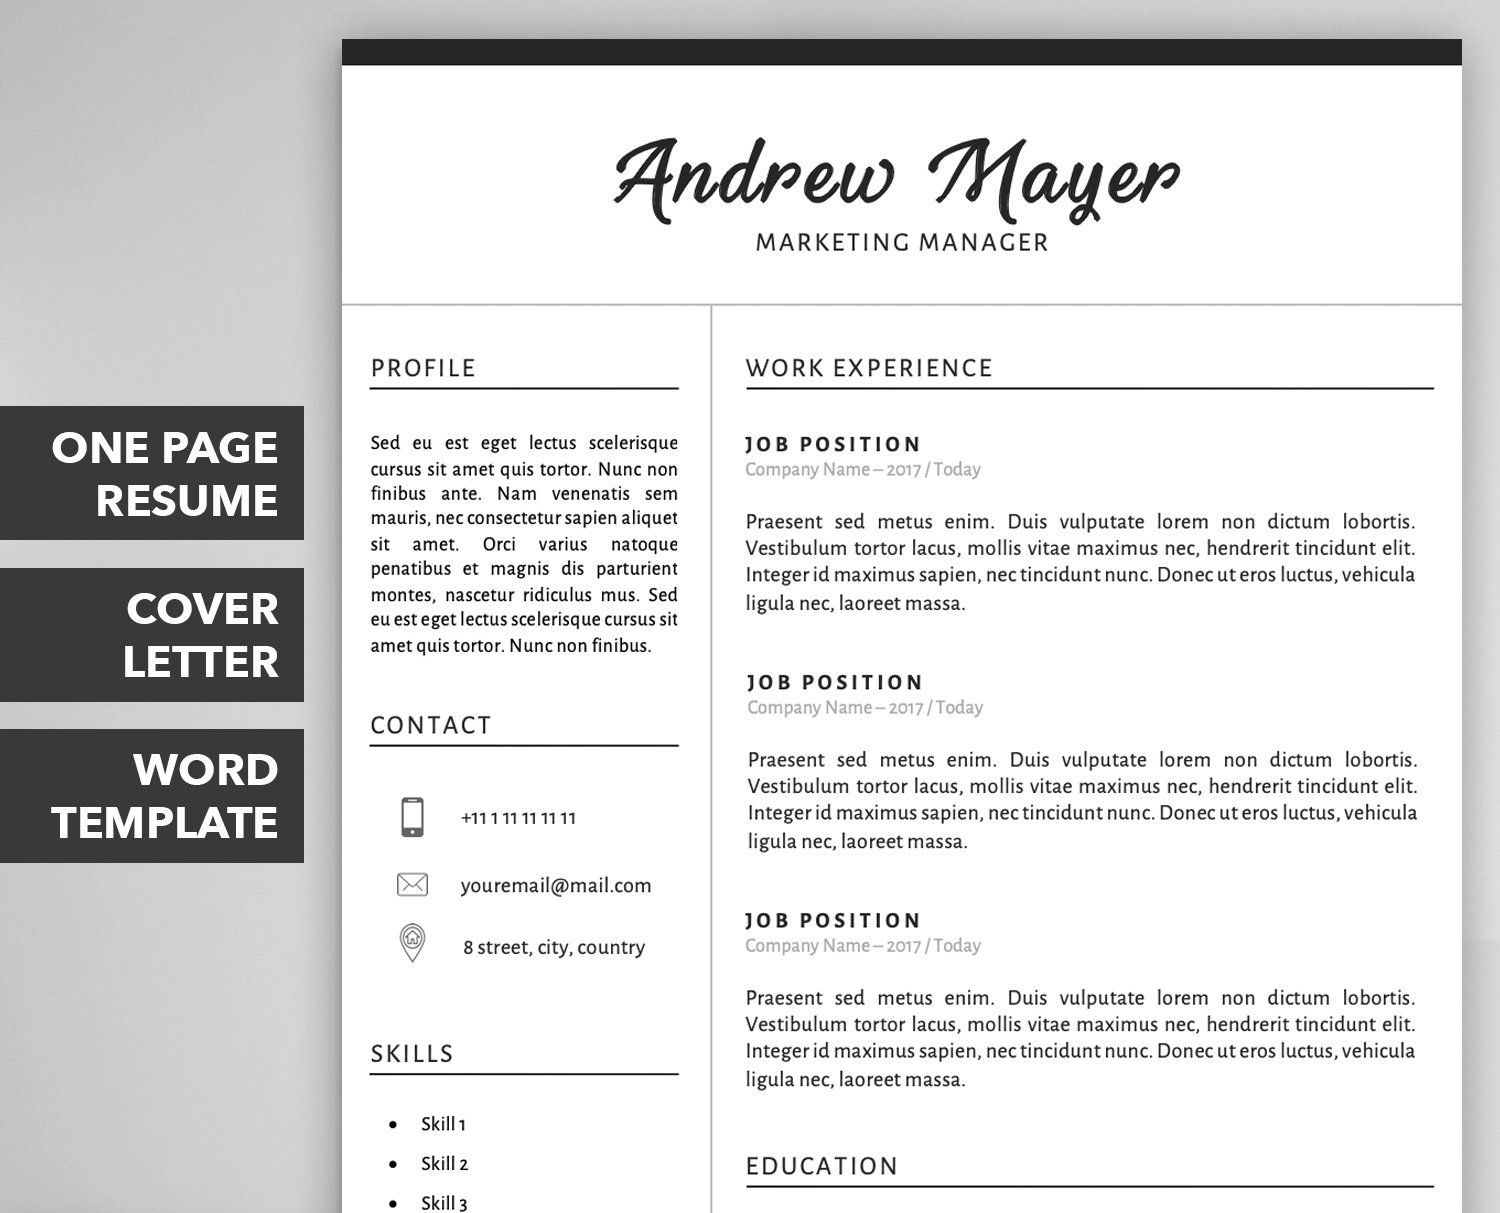 Resume Template / Curriculum Vitae CV Template + Cover